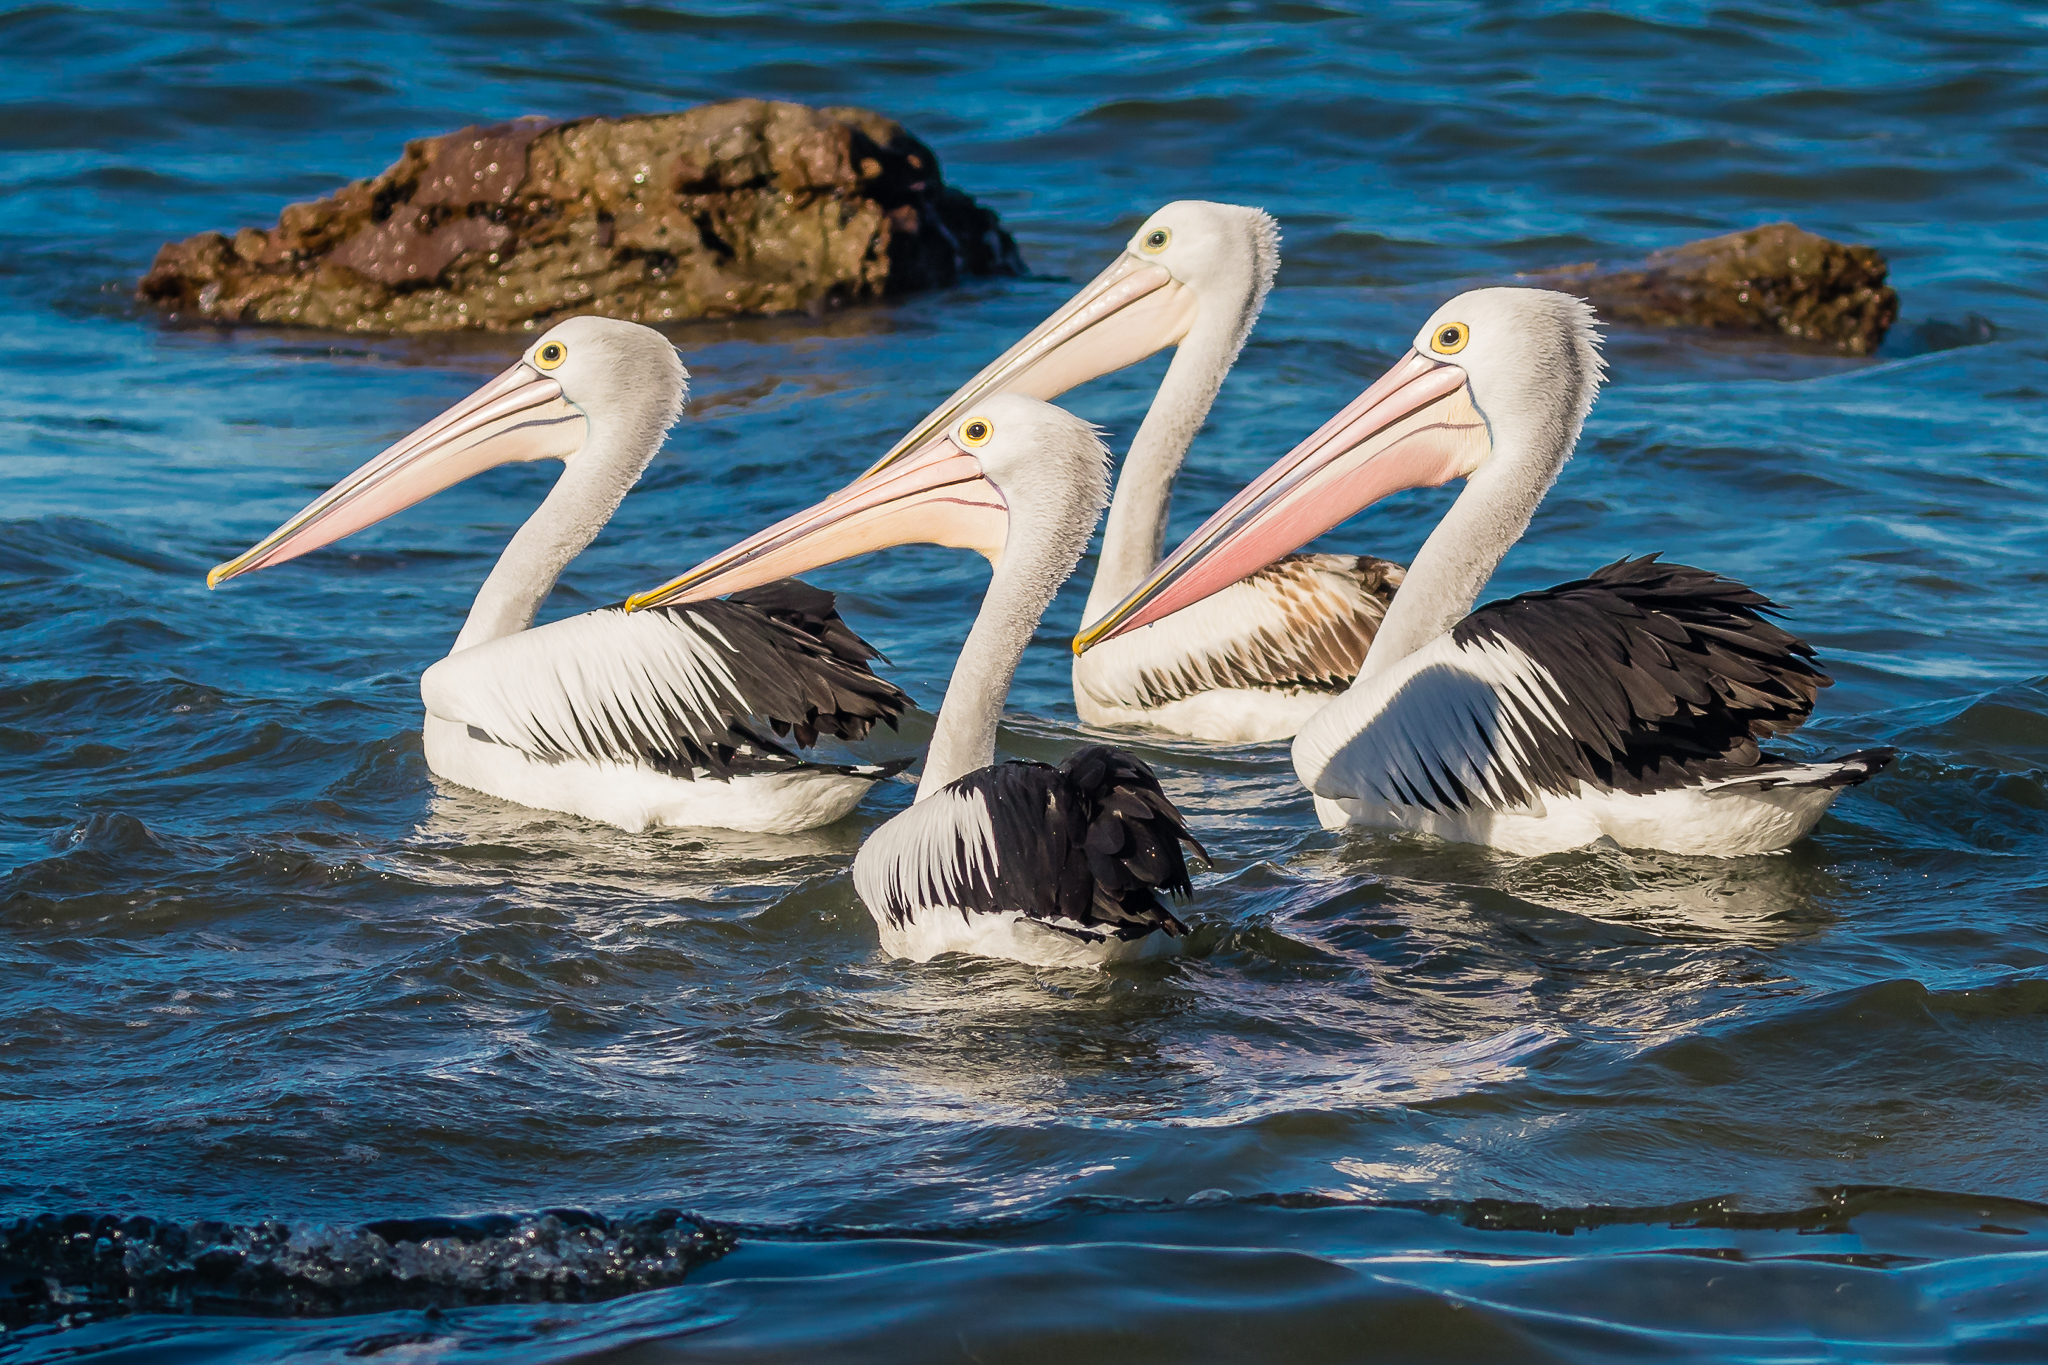 - At the beach birds compete with people, vehicles and development to feed, breed and rest. In the photo regal Australian Pelicans swim in formation, a common sight around the Australian coast.